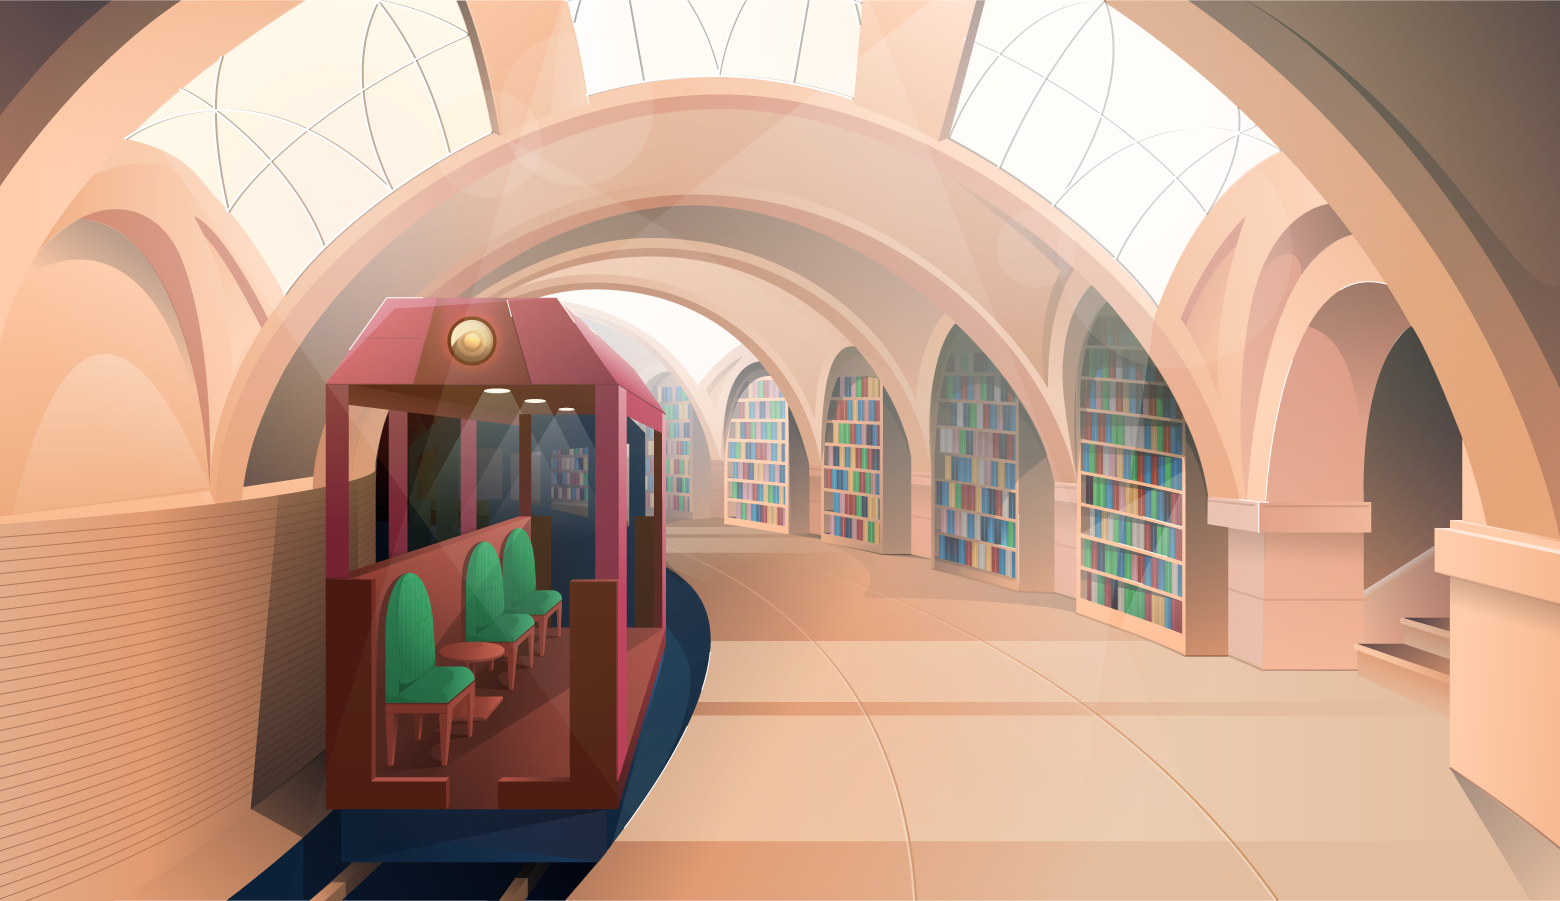 Reimagining the New York City Hall subway station as a library.